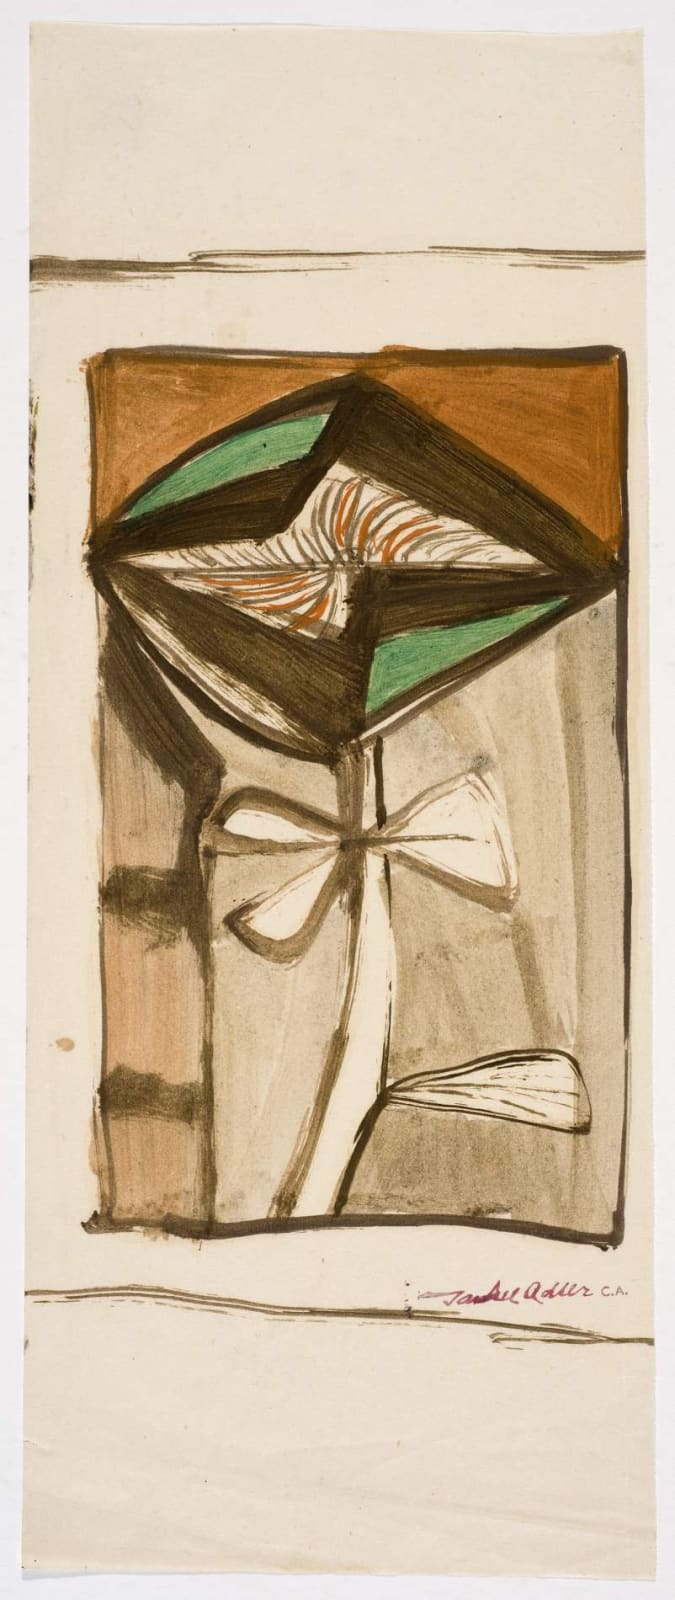 Jankel Adler (1895-1949) Untitled (Abstract Flower) n.d. Gouache on paper 33.5 x 13 cm Charles Bezalel Aukin Collection To see and discover more about this artist click here